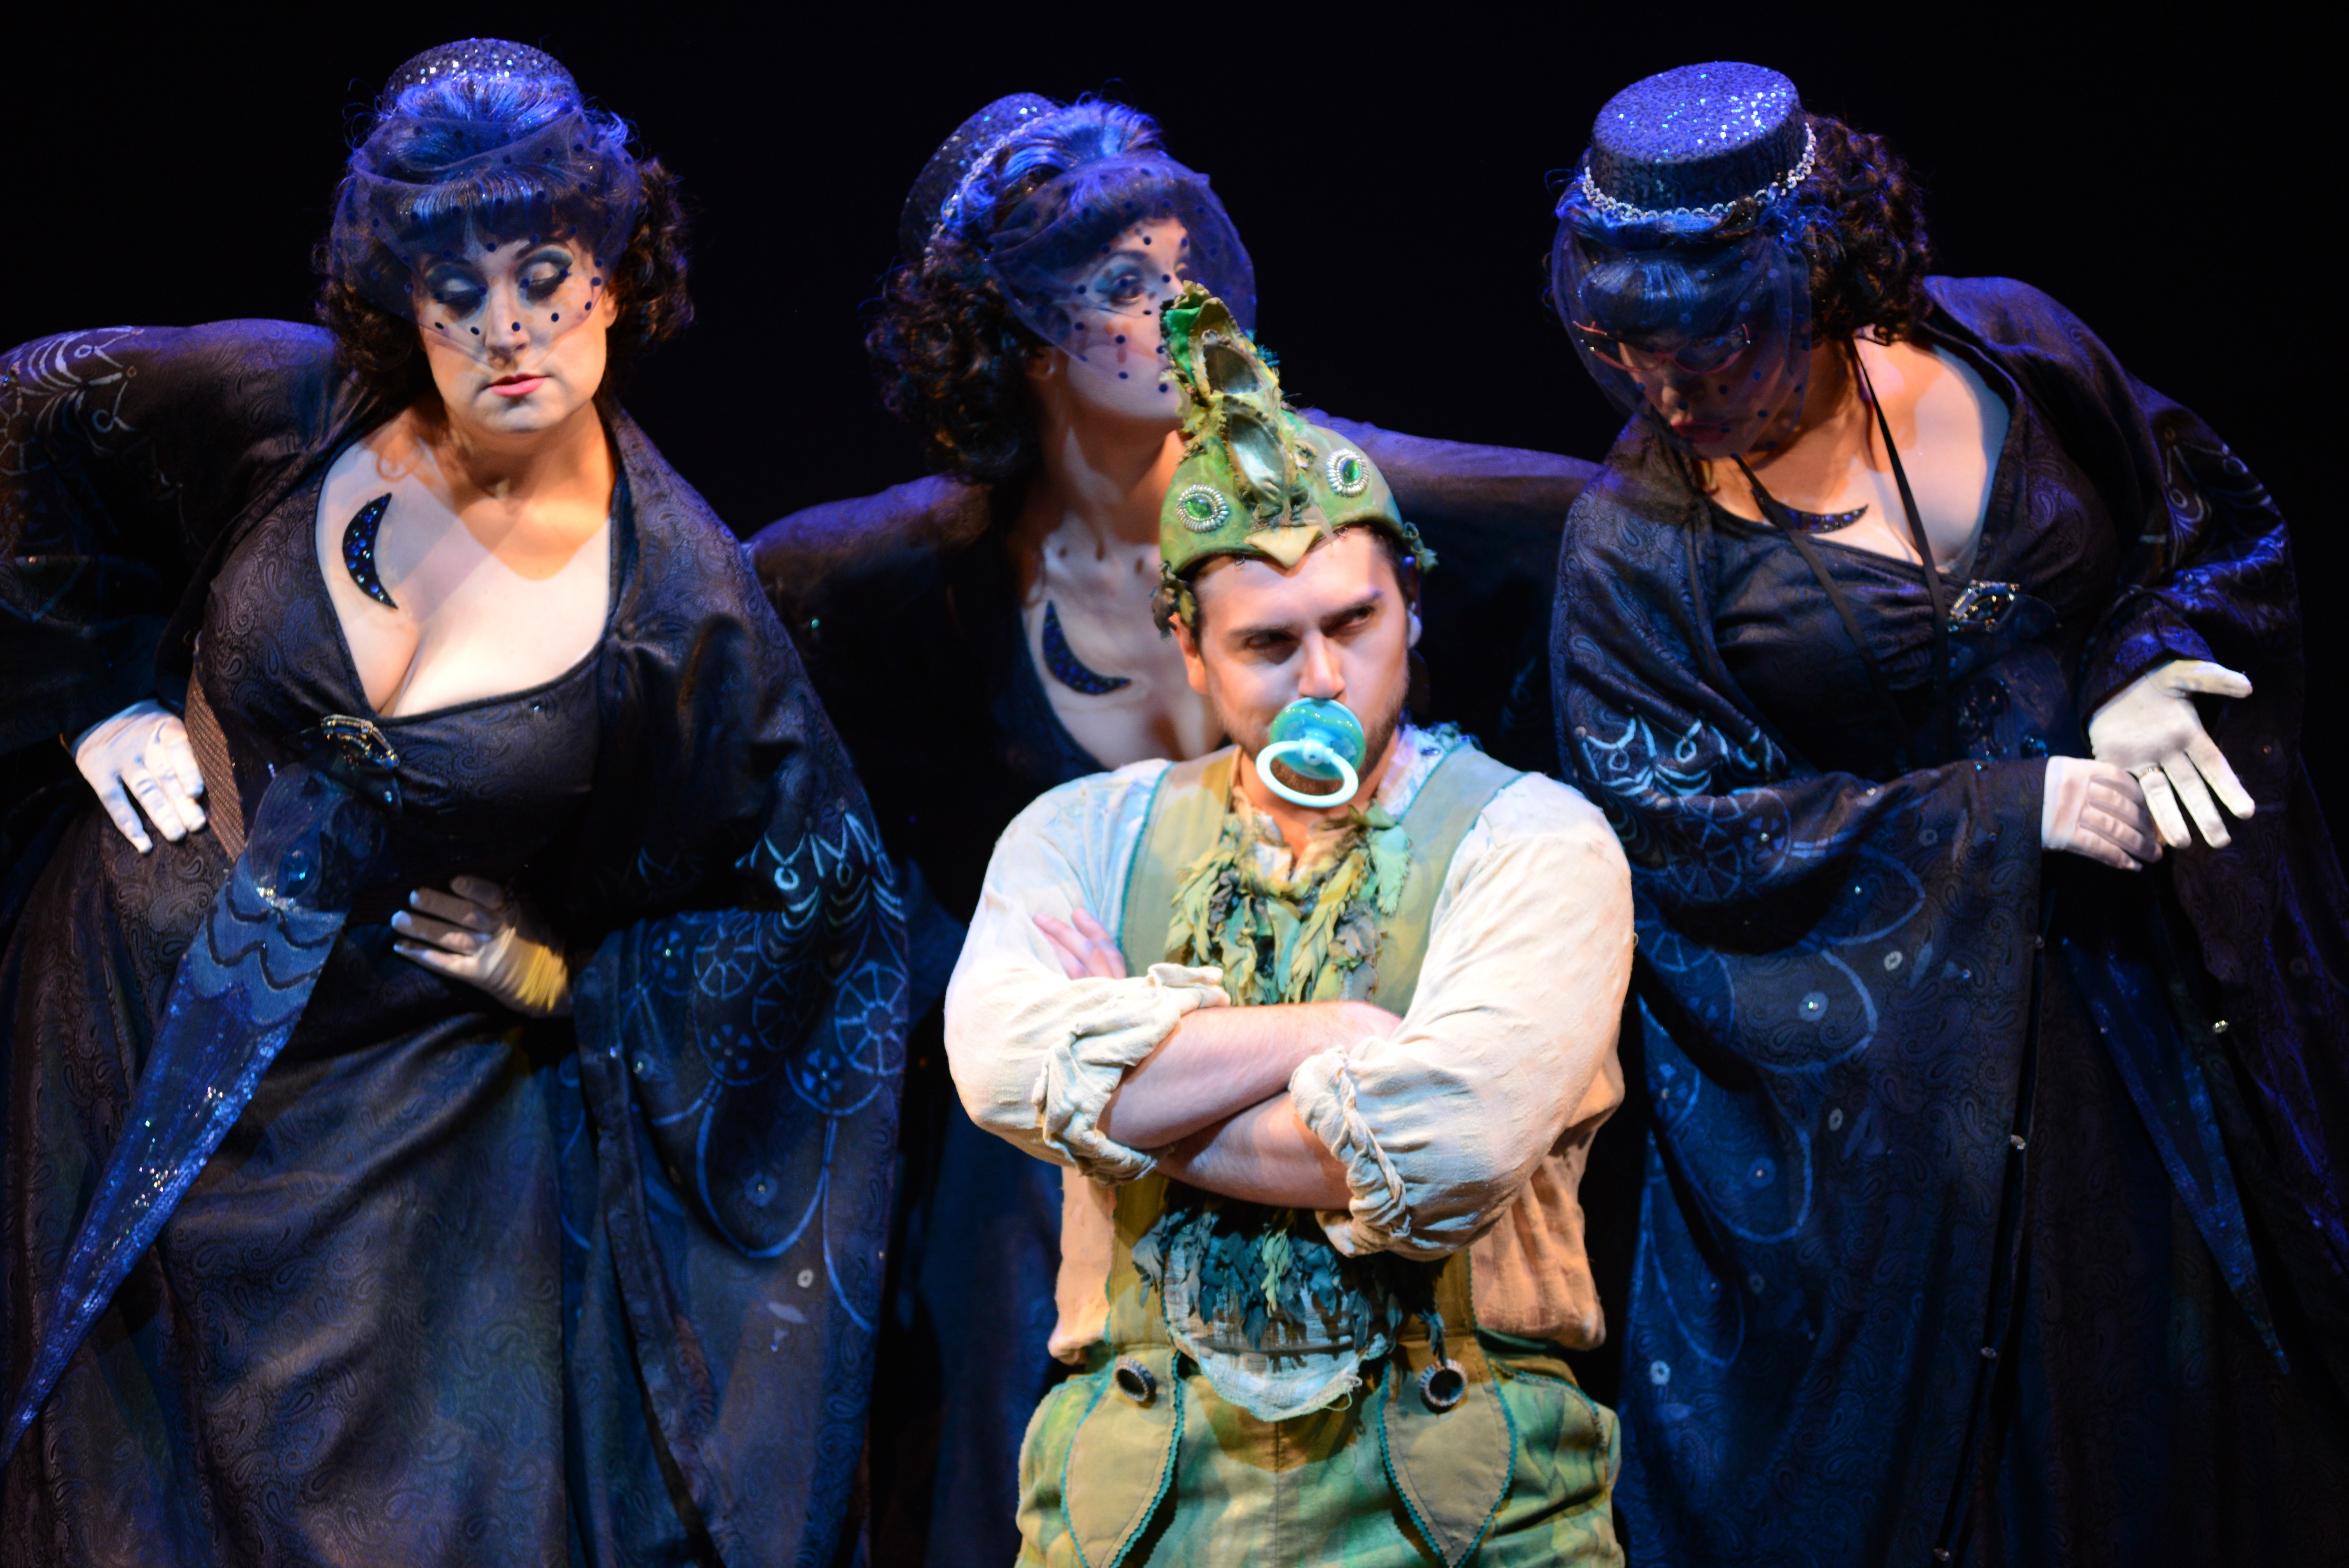 """Papageno (David Pershall) and The Three Ladies shown in Virginia Opera's """"The Magic Flute,"""" which will be performed at Richmond Centerstage's Carpenter Theatre this weekend. - DAVID BELOFF"""